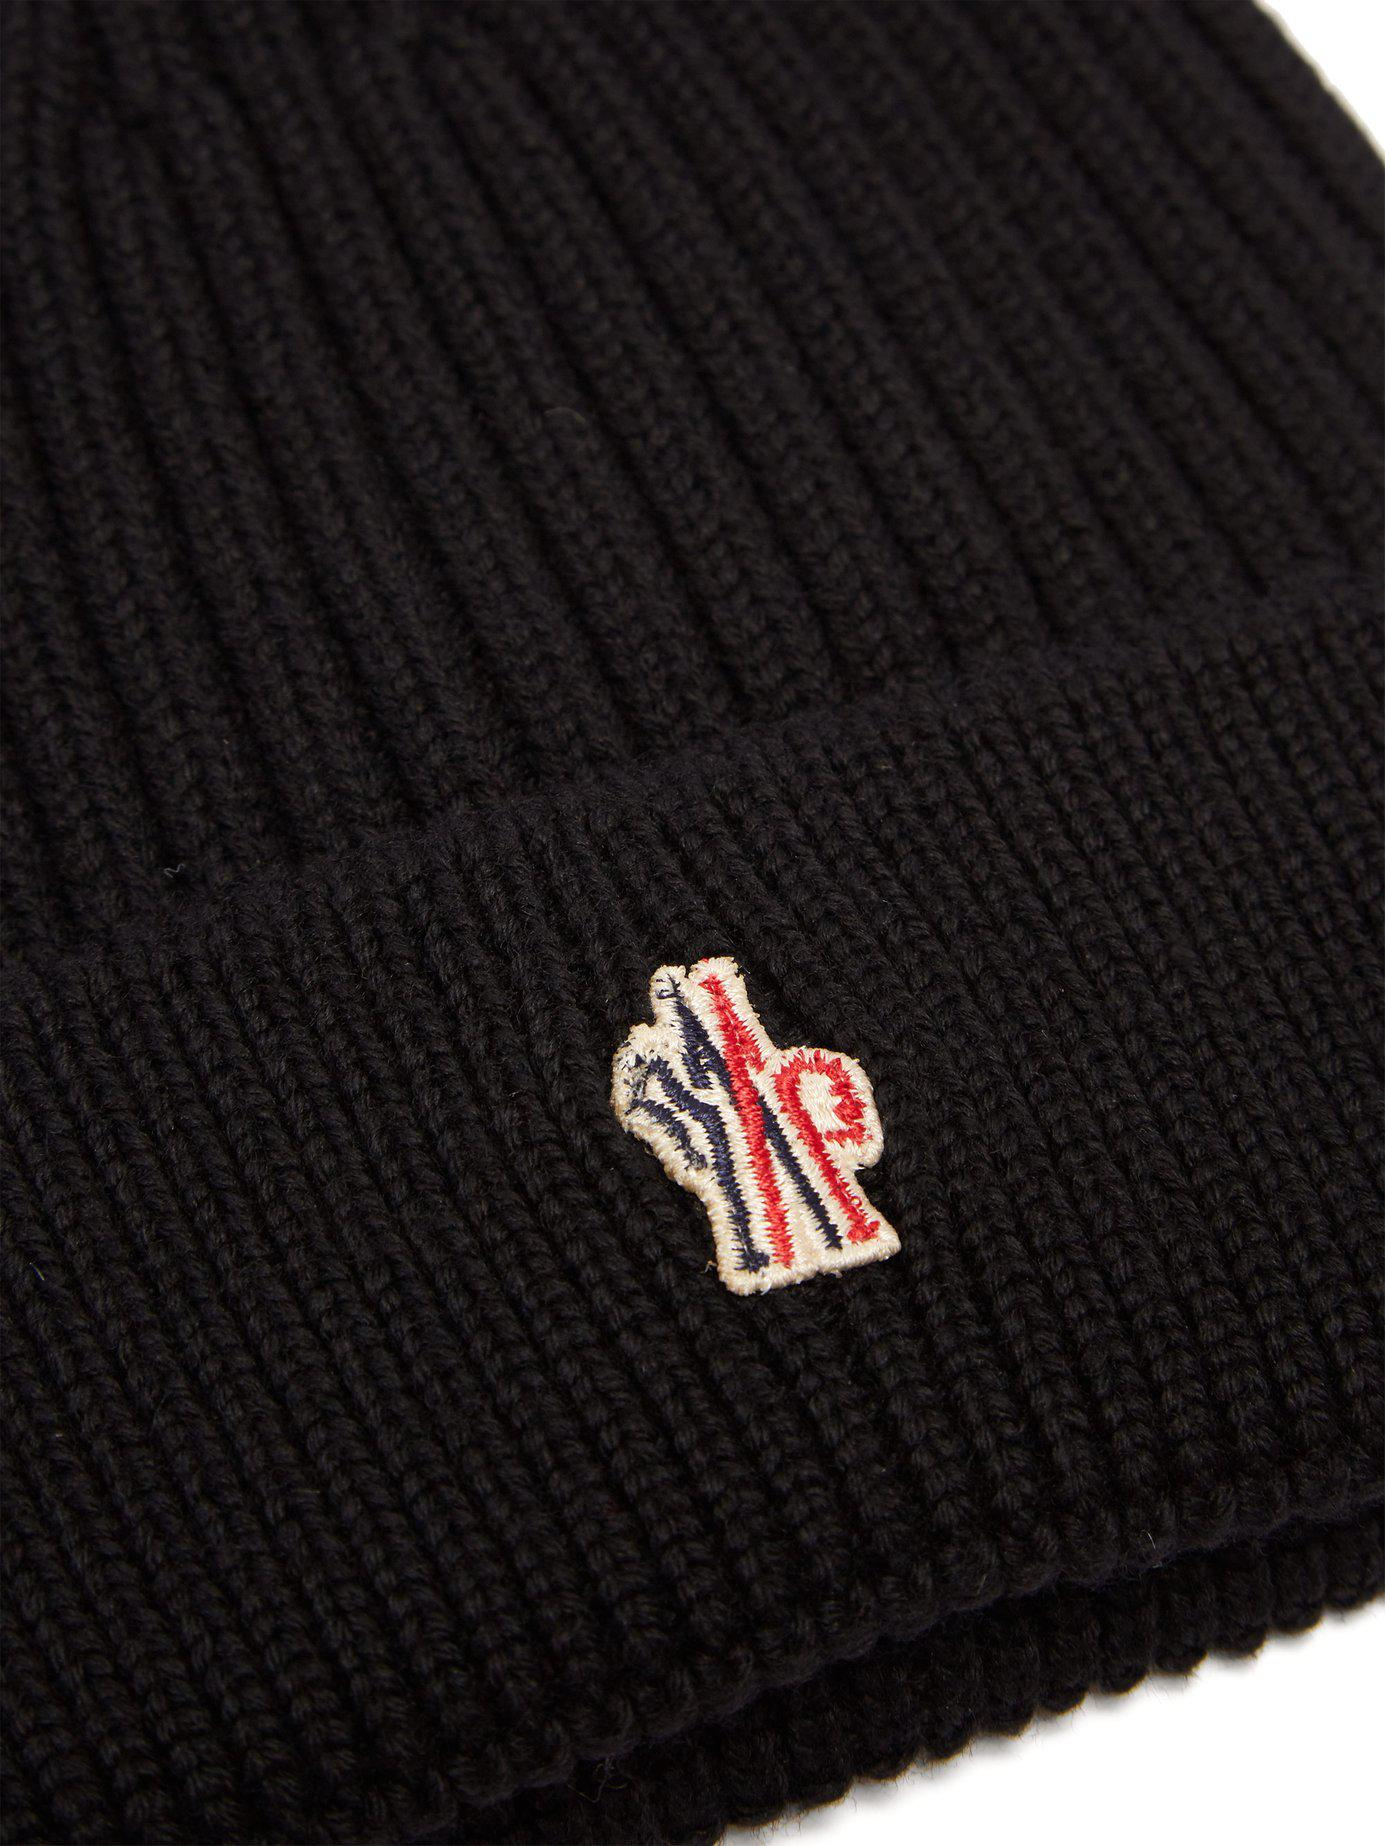 f78037a4004a7 Moncler Grenoble Logo Virgin Wool Beanie Hat in Black for Men - Save  38.23529411764706% - Lyst